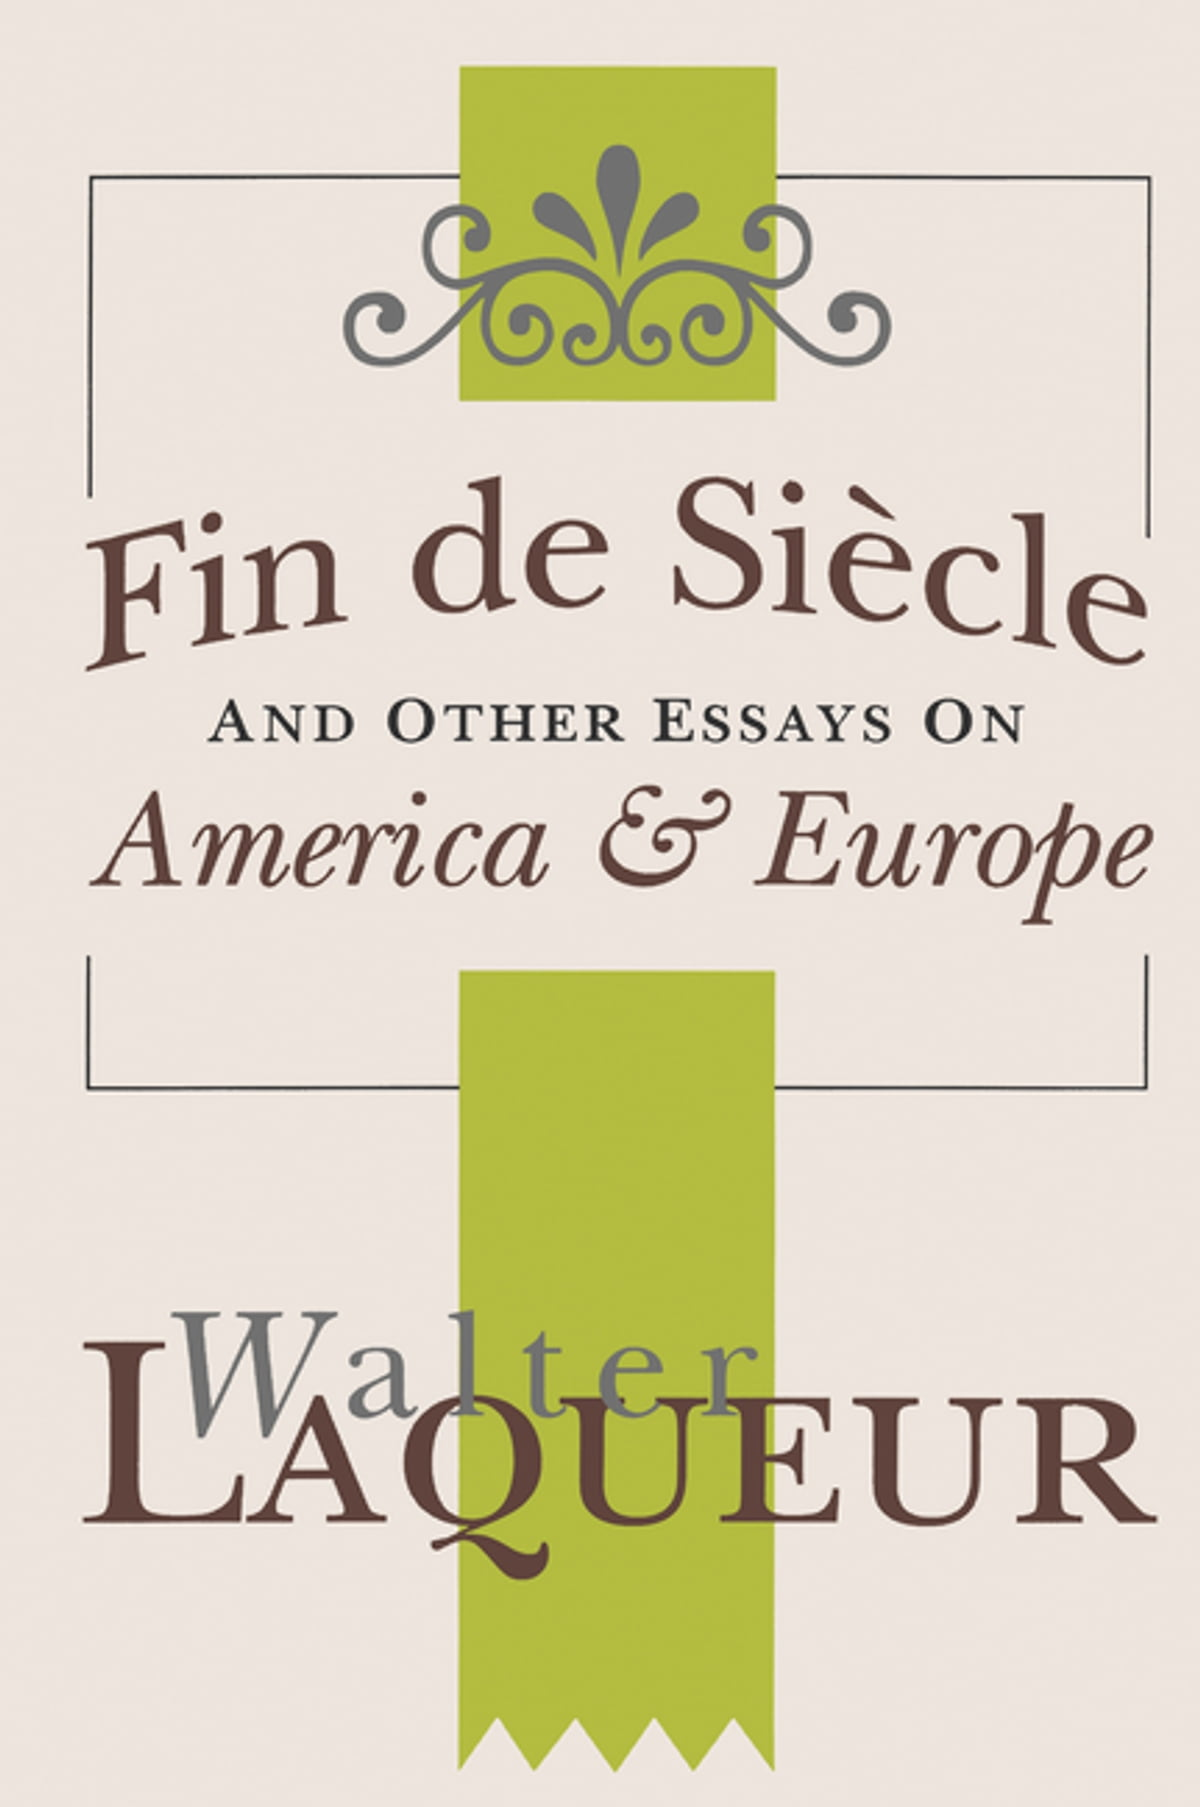 Fin De Siecle And Other Essays On America And Europe Ebook By  Fin De Siecle And Other Essays On America And Europe Ebook By     Rakuten Kobo Essay Thesis Examples also Narrative Essay Example High School  Thesis For An Essay